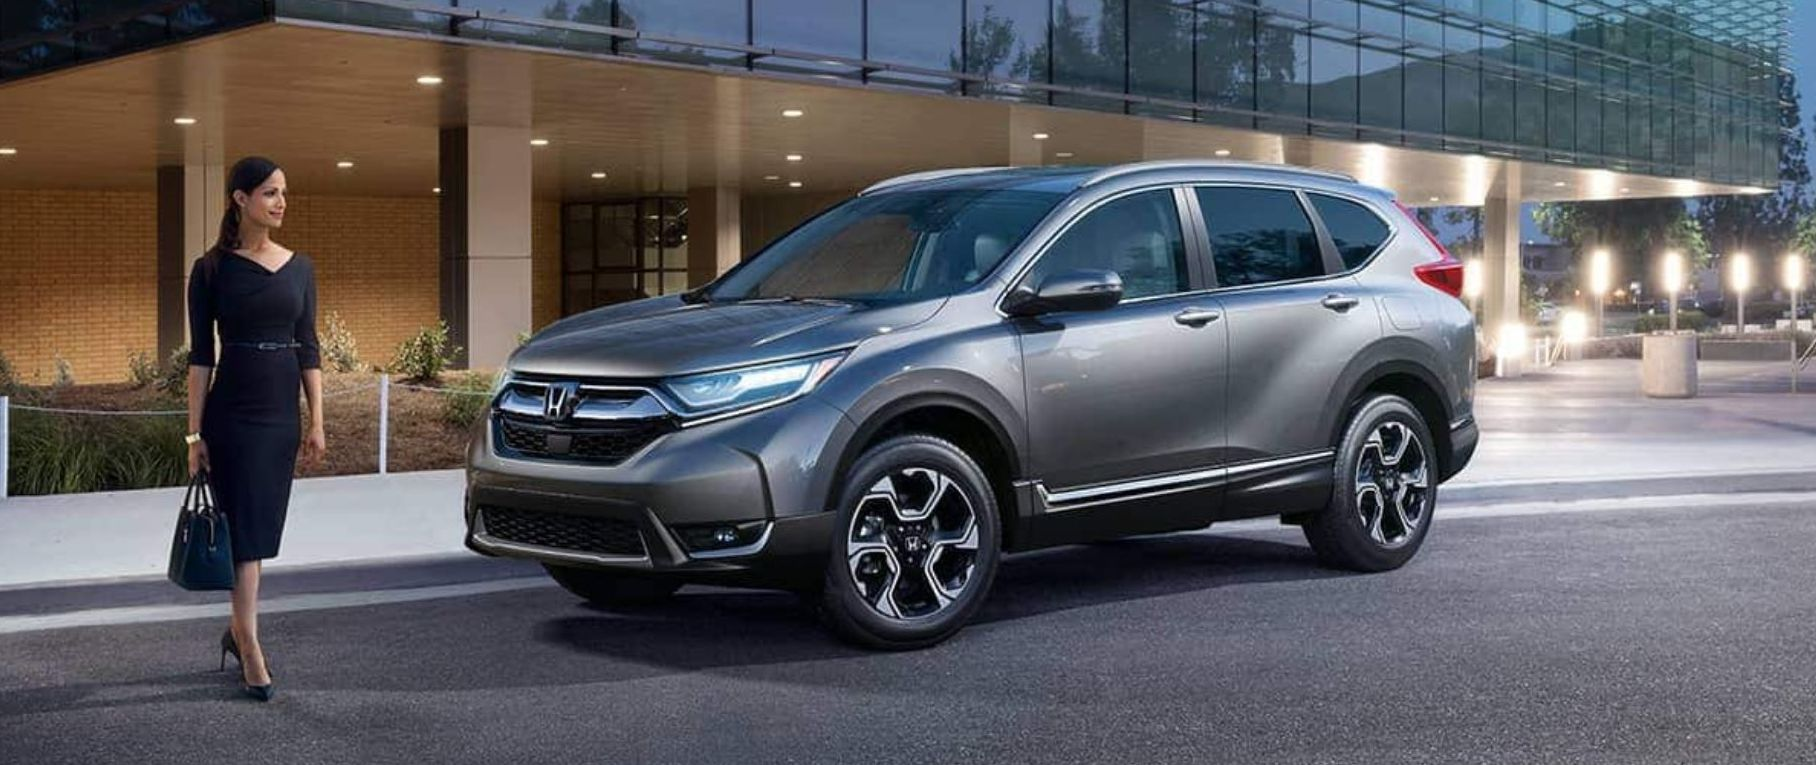 2019 Honda CR-V for Sale near Bethesda, MD